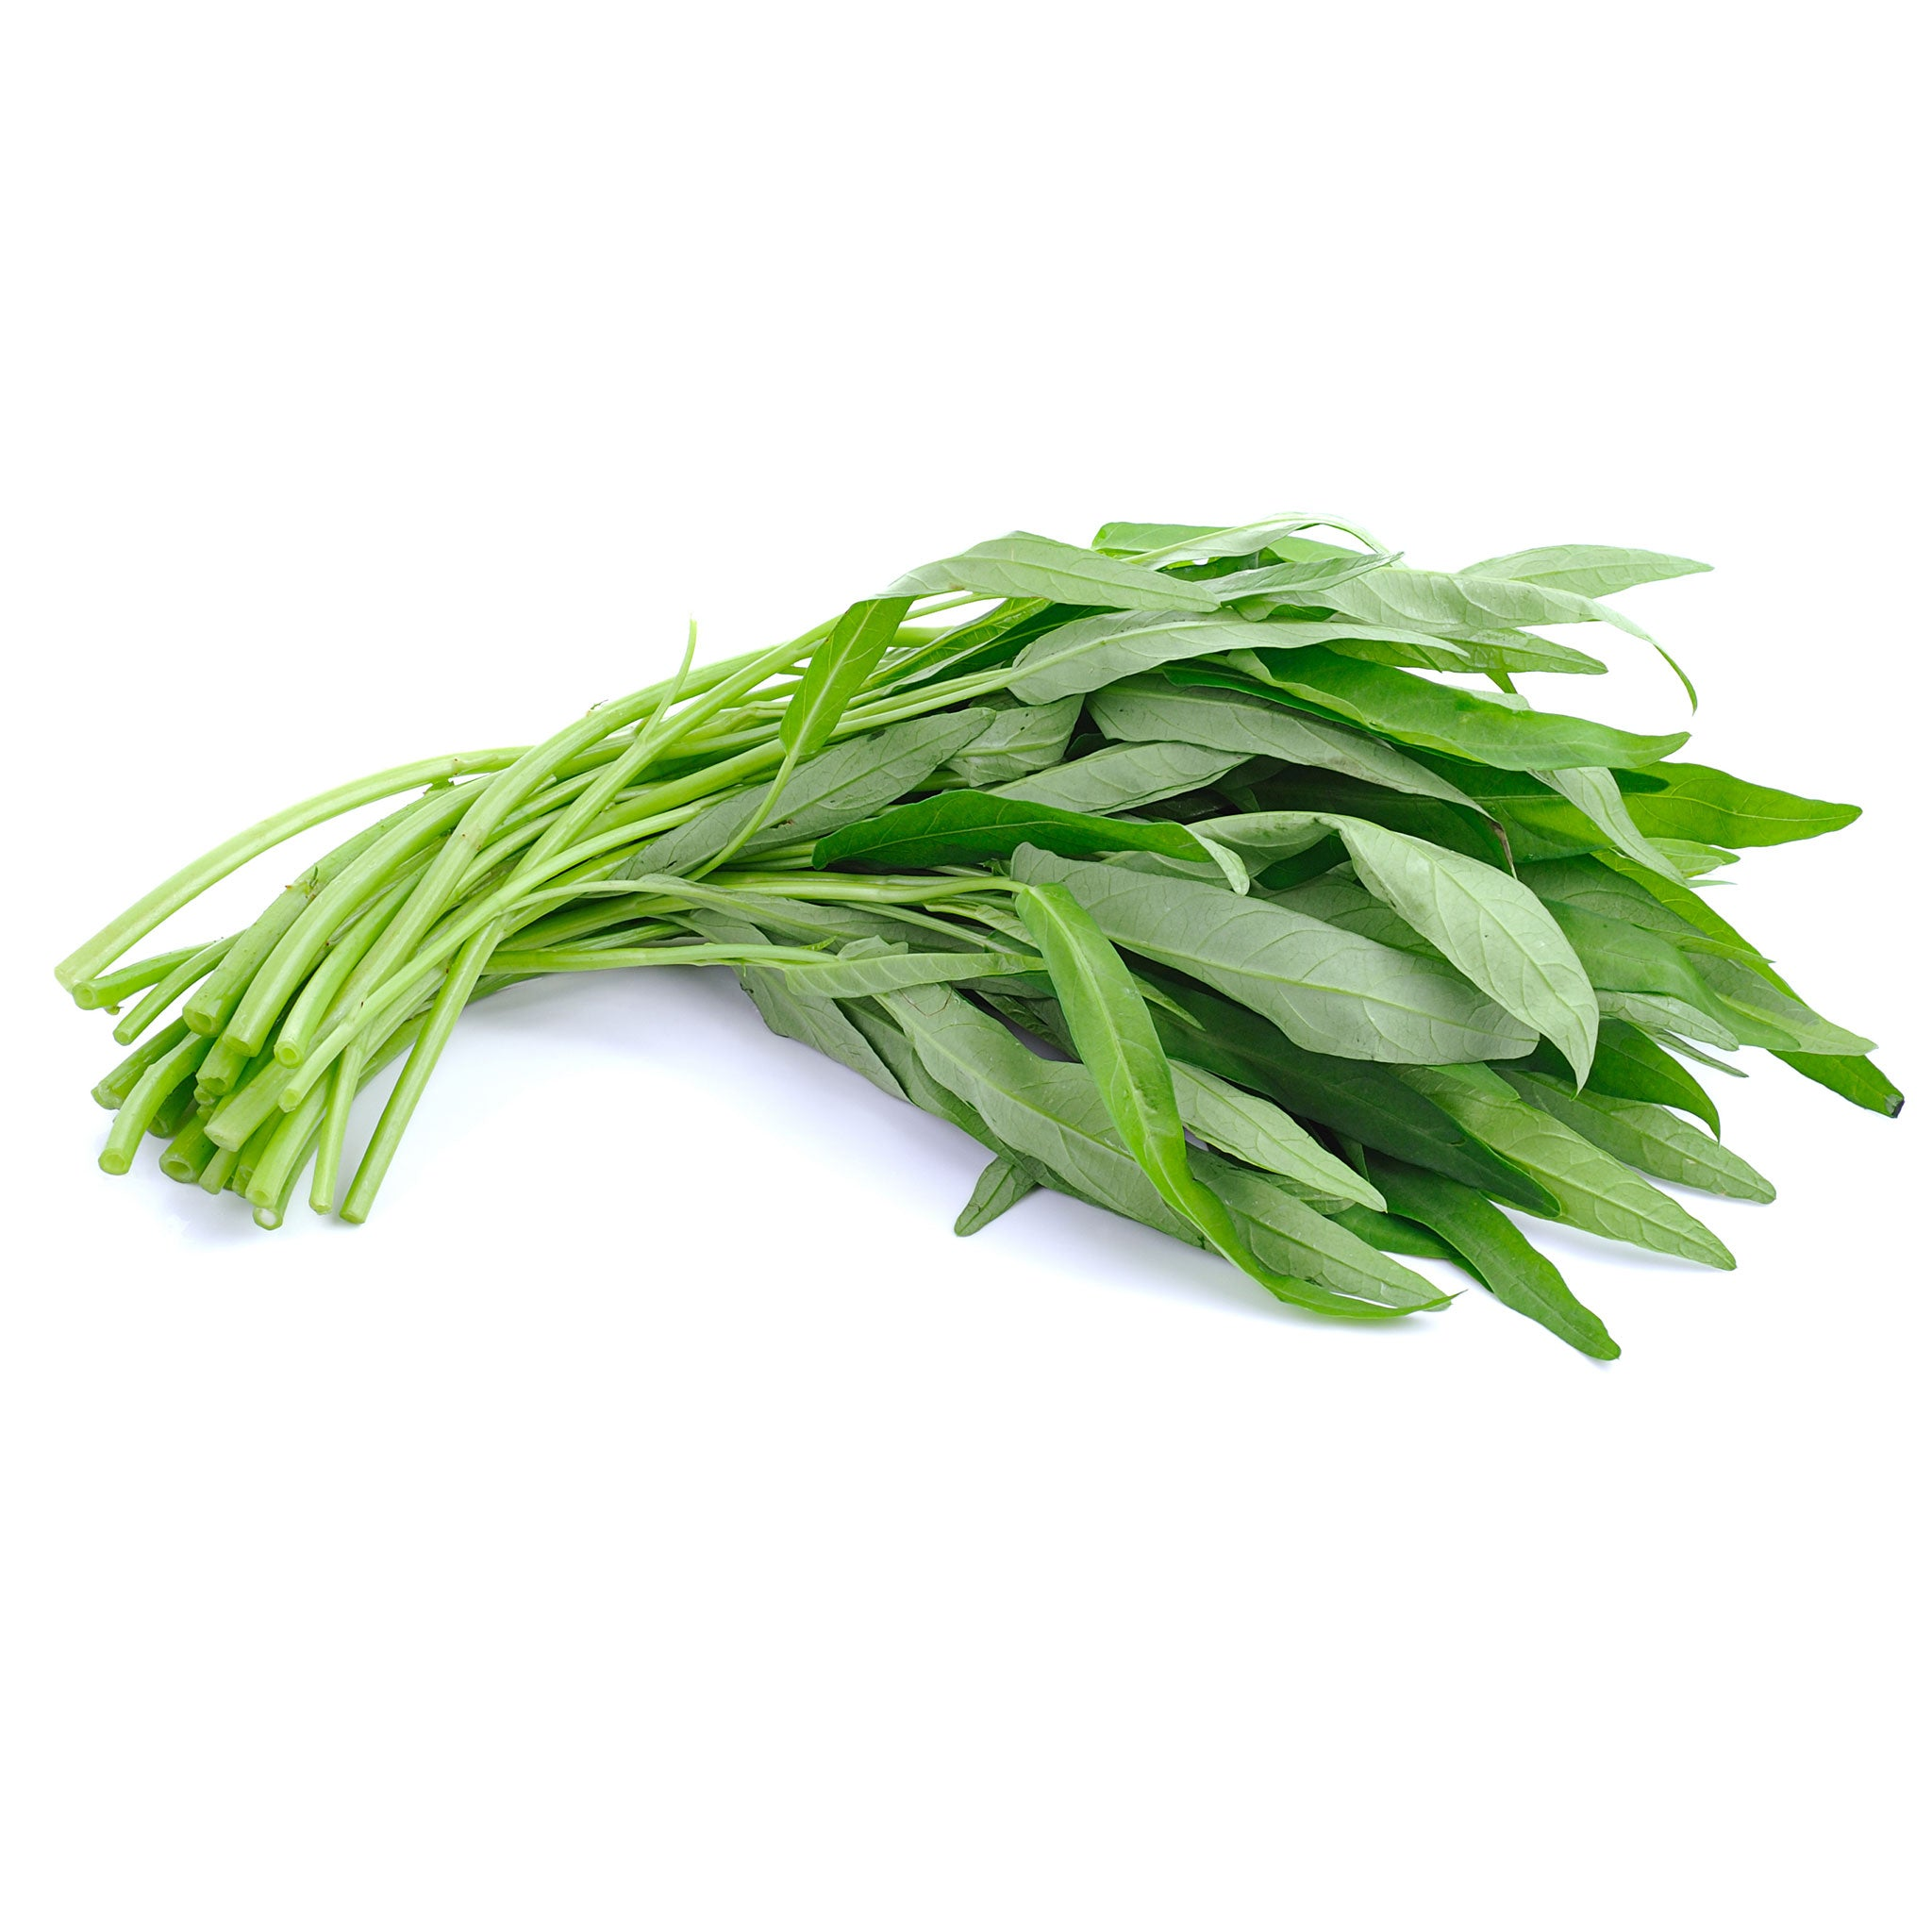 Thai morning glory (water spinach) 200g - imported weekly from Thailand